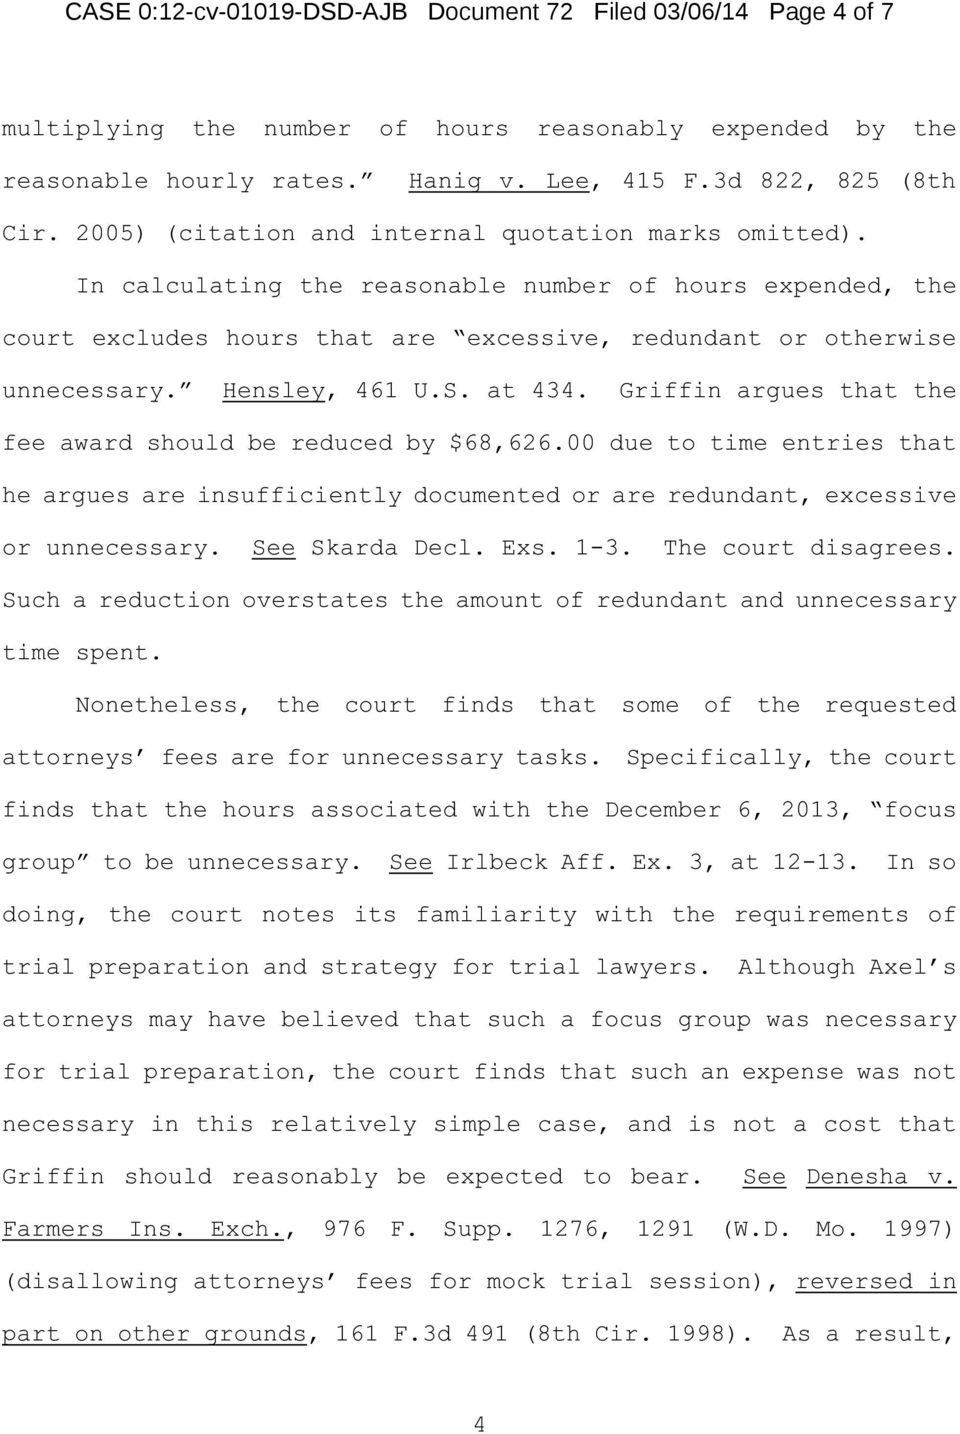 Hensley, 461 U.S. at 434. Griffin argues that the fee award should be reduced by $68,626.00 due to time entries that he argues are insufficiently documented or are redundant, excessive or unnecessary.